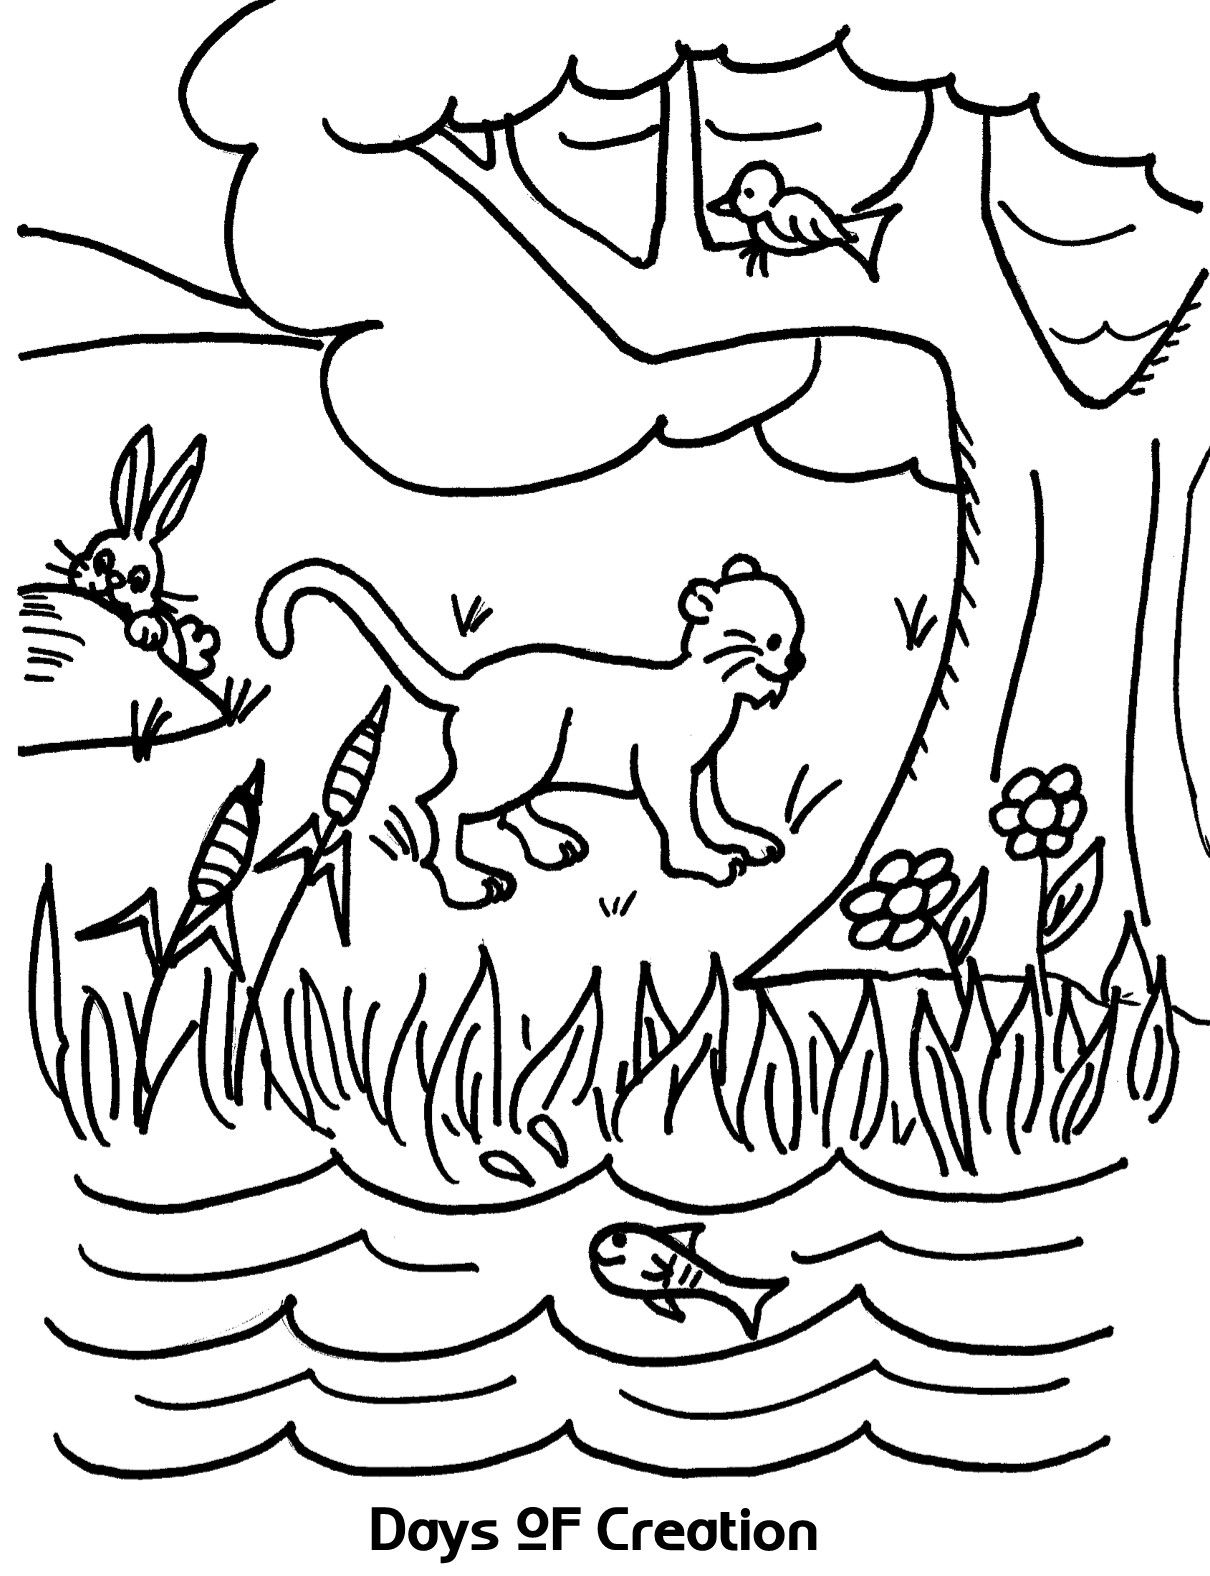 Free coloring pages about creation - Creation Day 6 Coloring Page Sketch Coloring Page